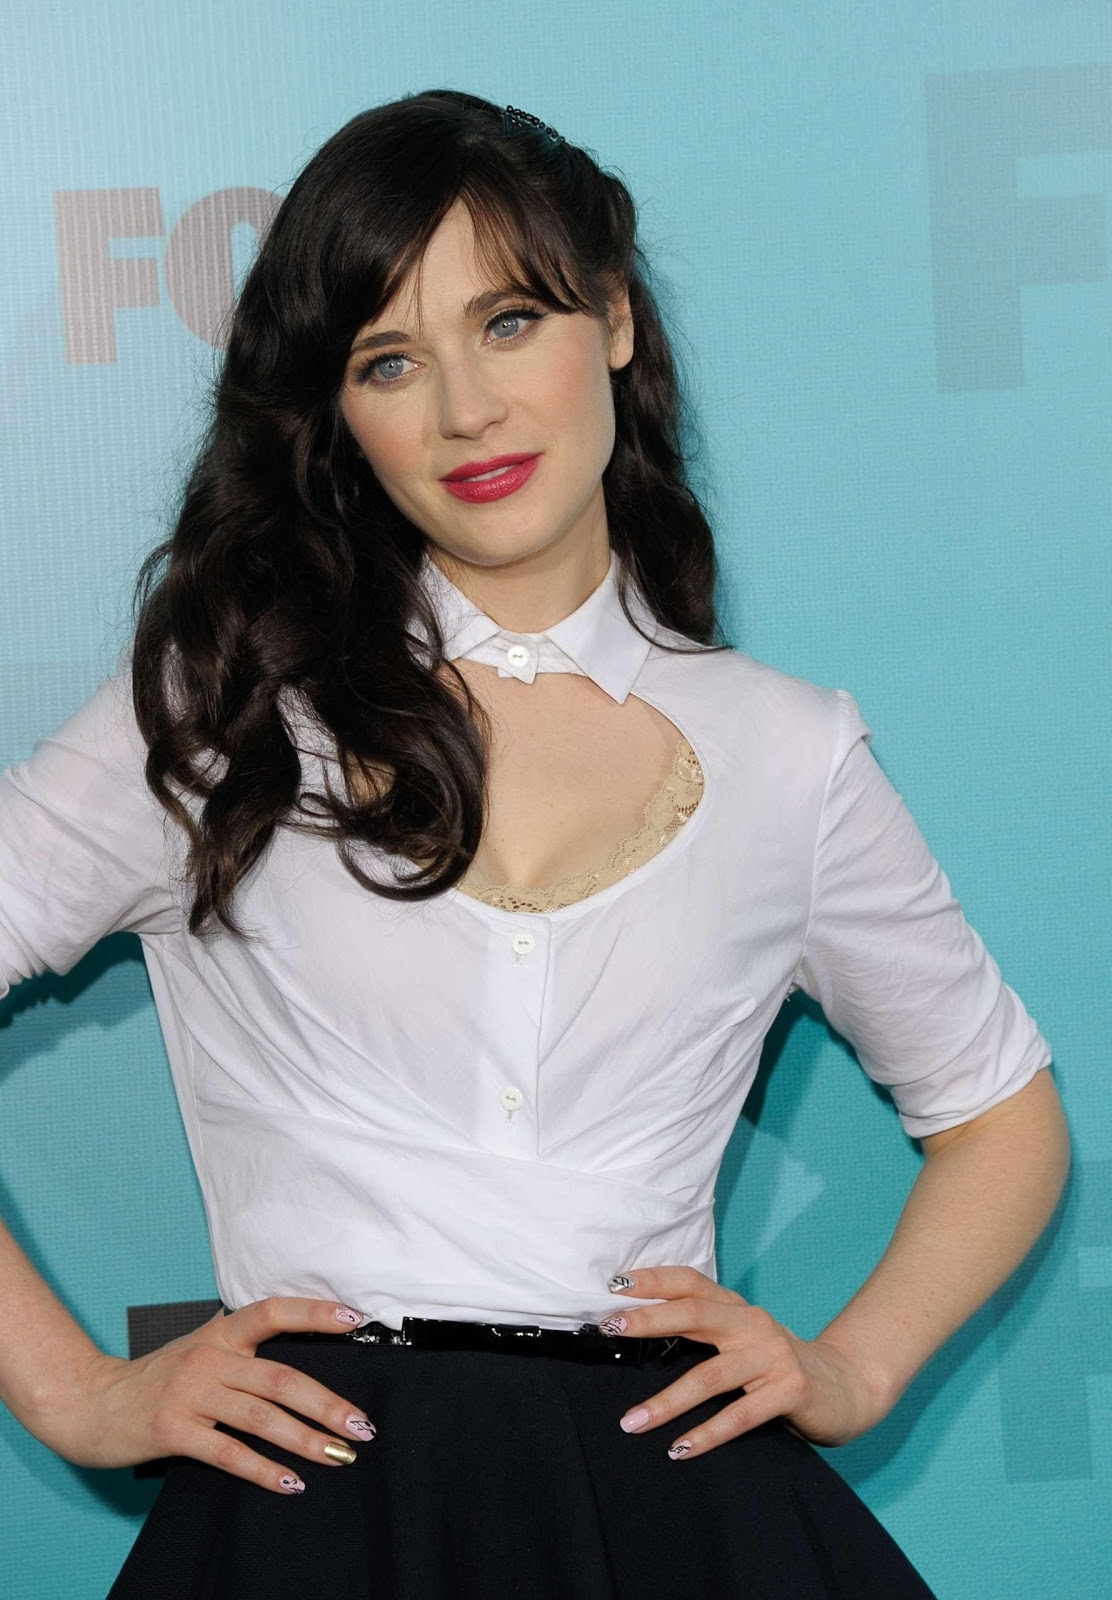 http://2.bp.blogspot.com/-wgs2KP-LIUo/T-NSpRzezfI/AAAAAAAAAH0/kVV25KwyIEg/s1600/zooey-deschanel-2012-fox-upfronts-party-in-new-york-01.jpg